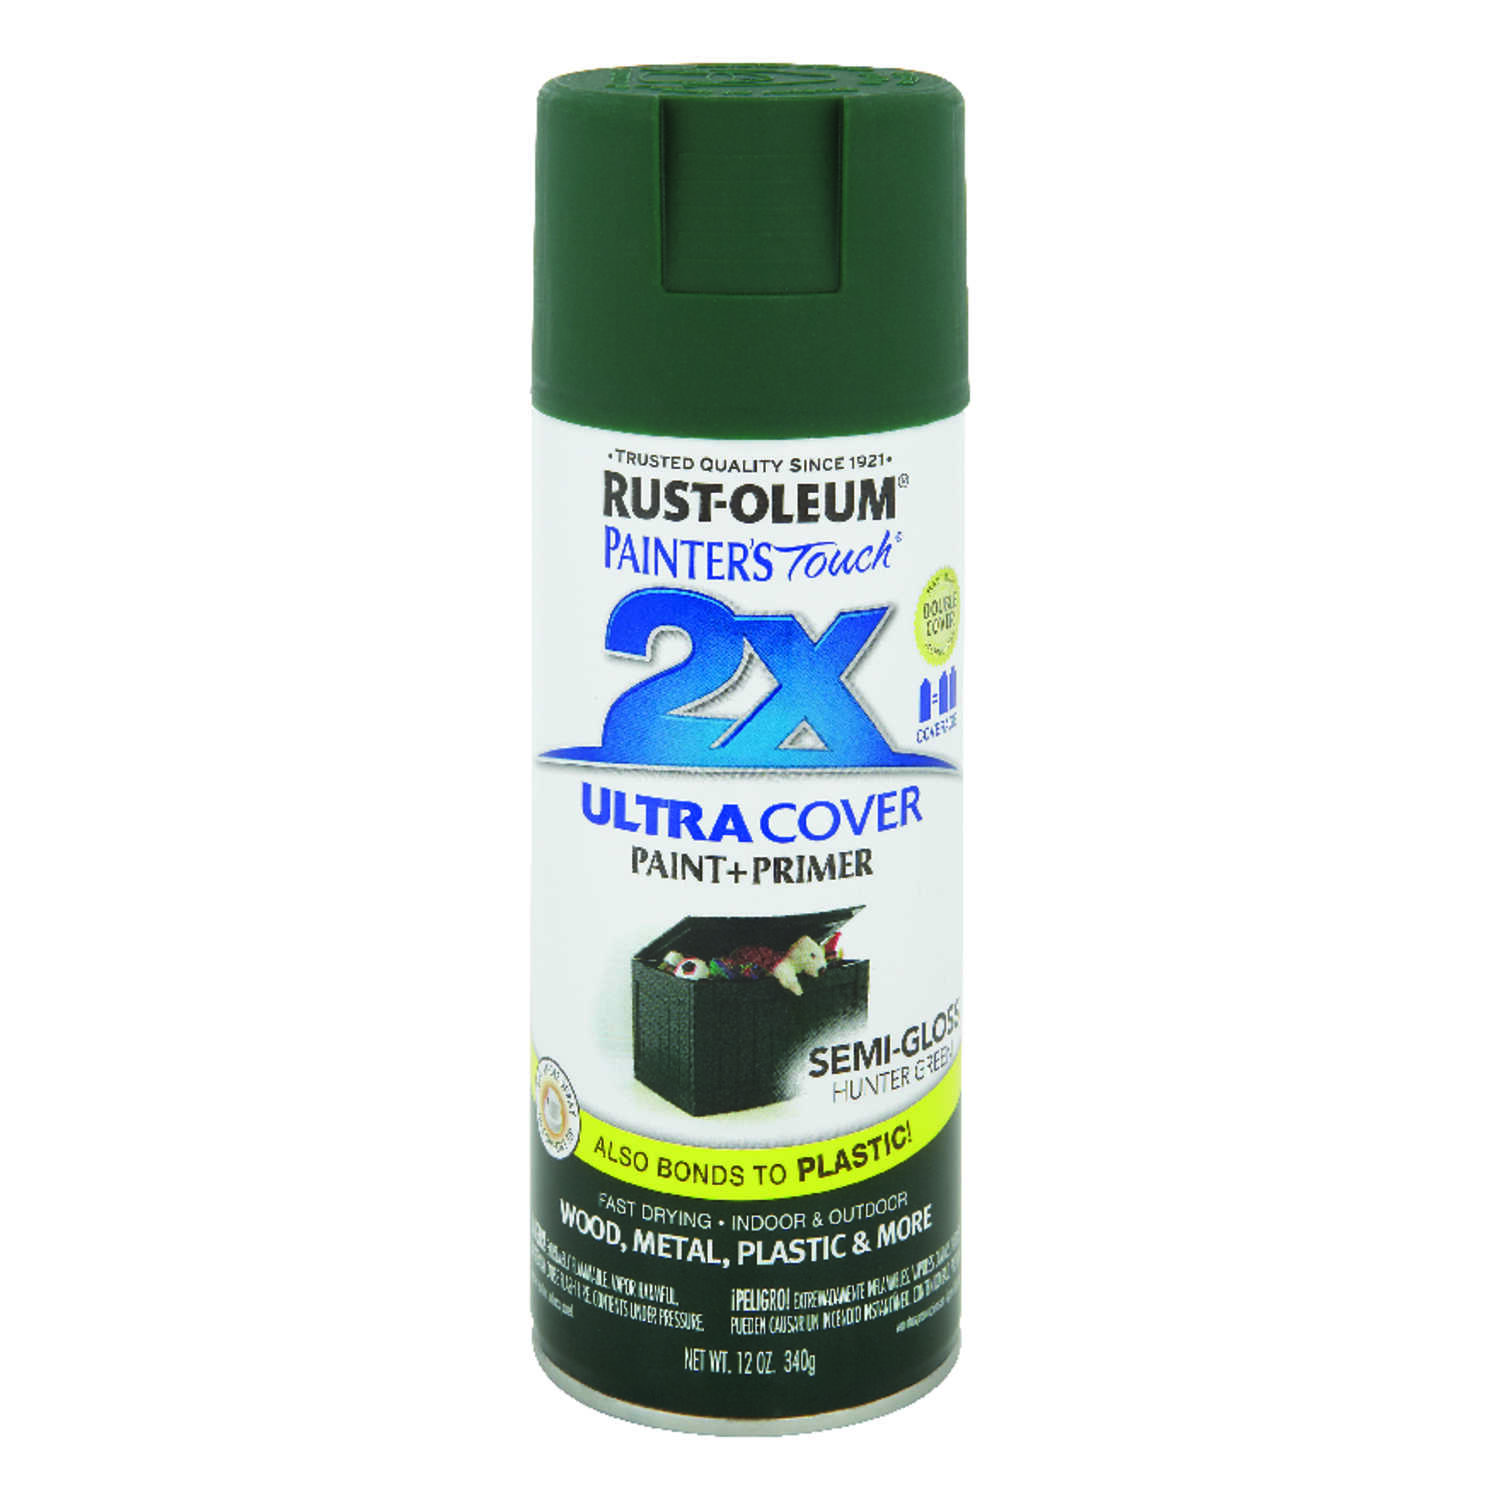 Rust-Oleum  Painter's Touch Ultra Cover  Semi-Gloss  Spray Paint  Hunter Green  12 oz.